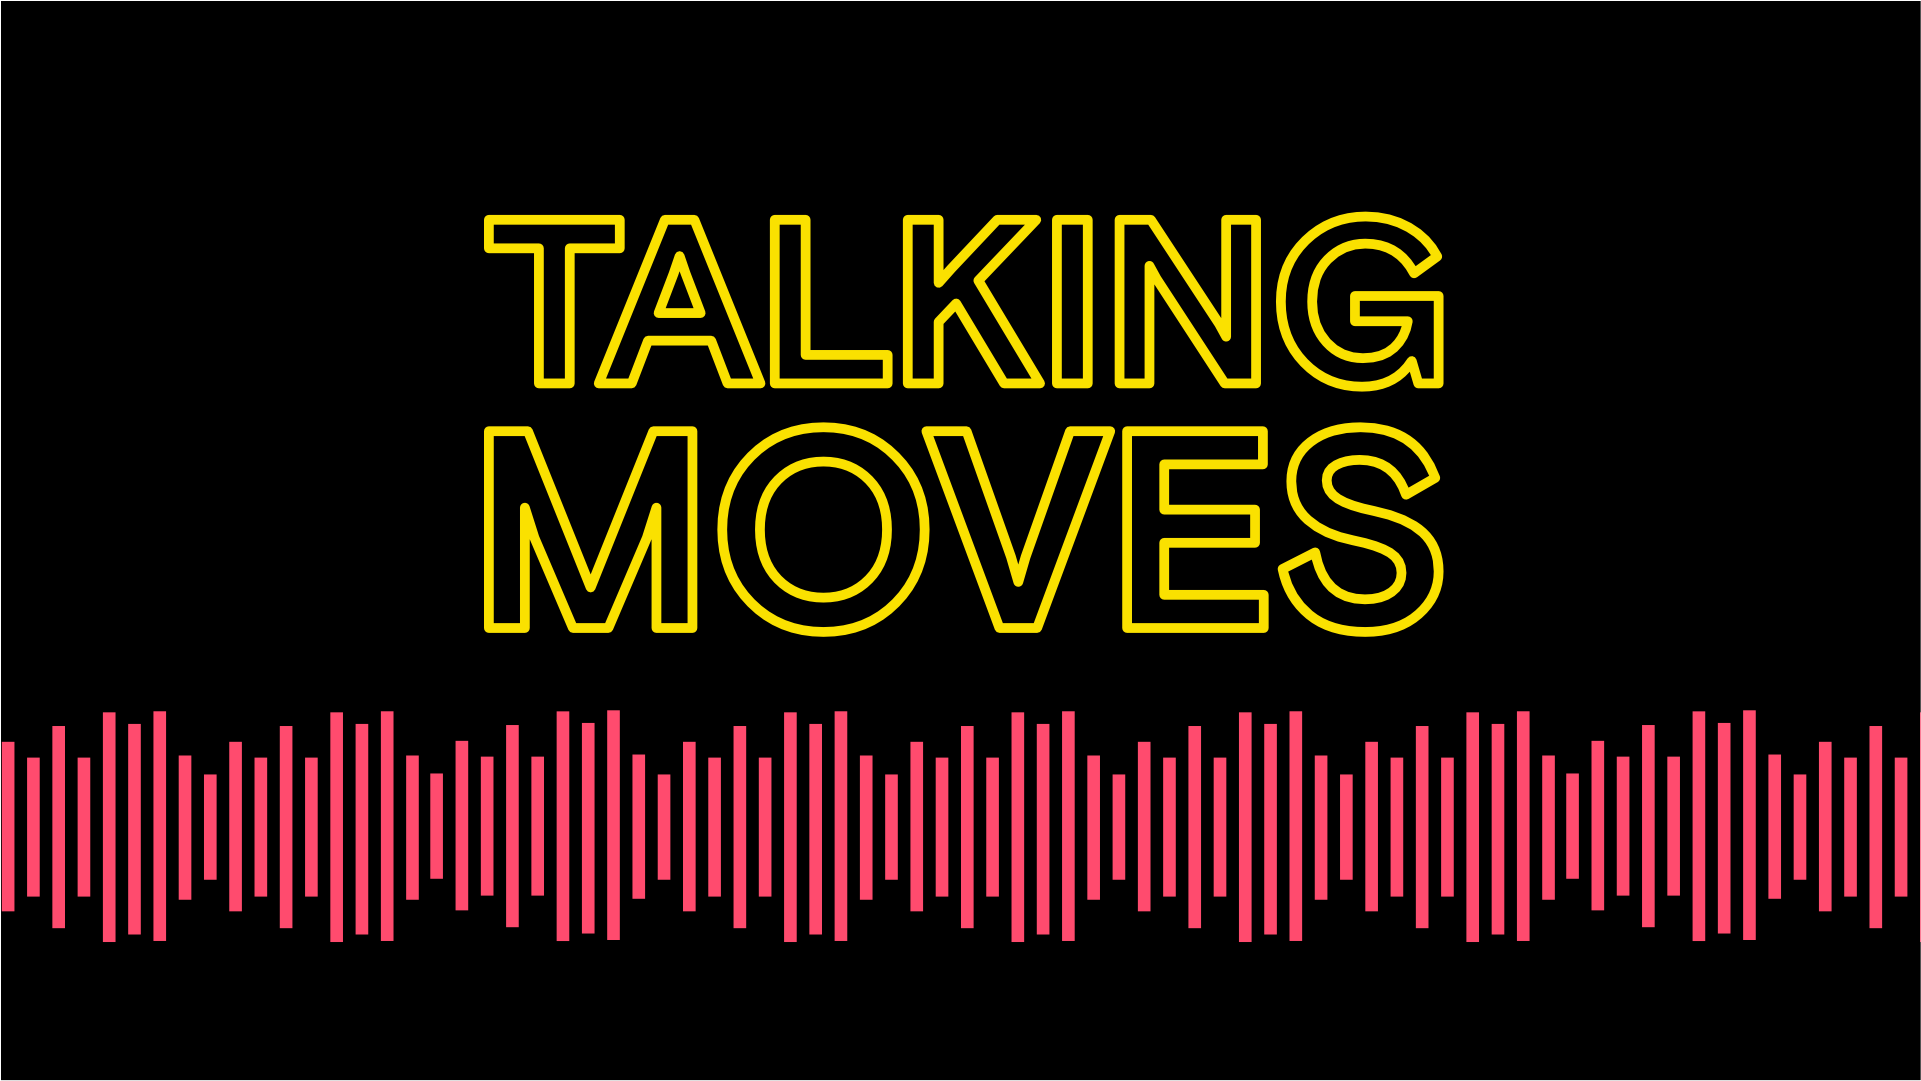 Talking Moves title with pink sound wave underneath